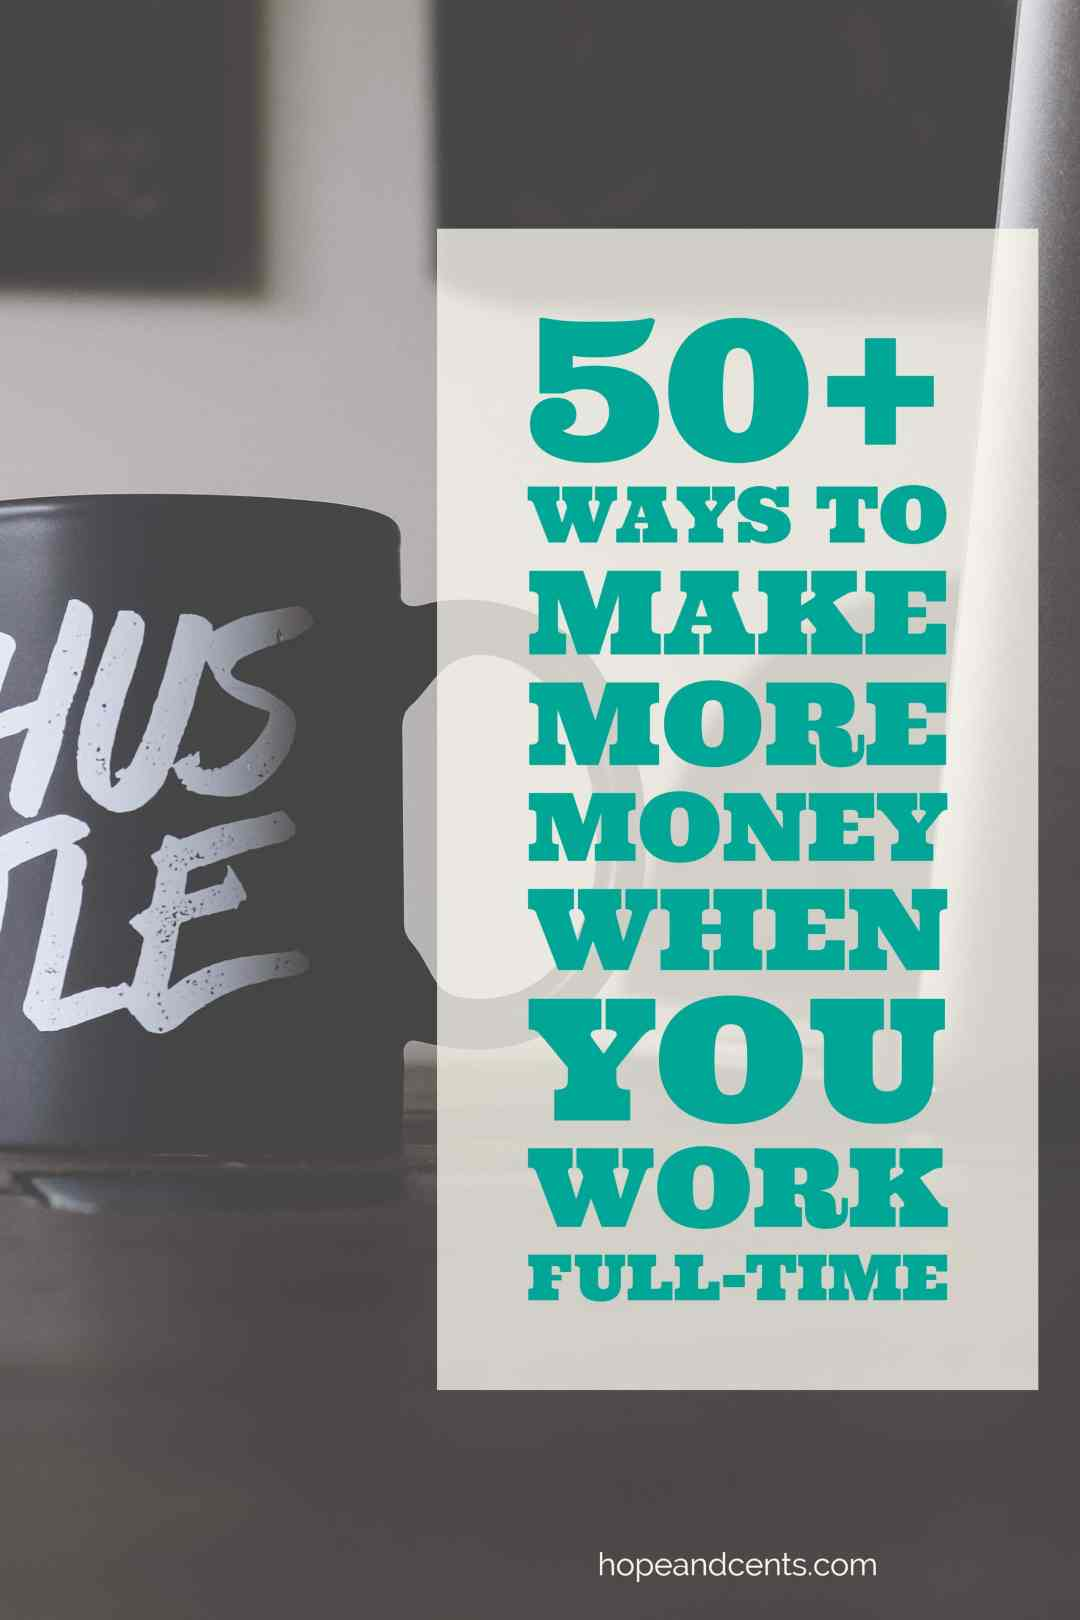 Tons of ideas here to help you find a way to make more money. Between side hustles, ideas for selling things, and lots of other tips, these suggestions will help you bring in extra cash in no time.